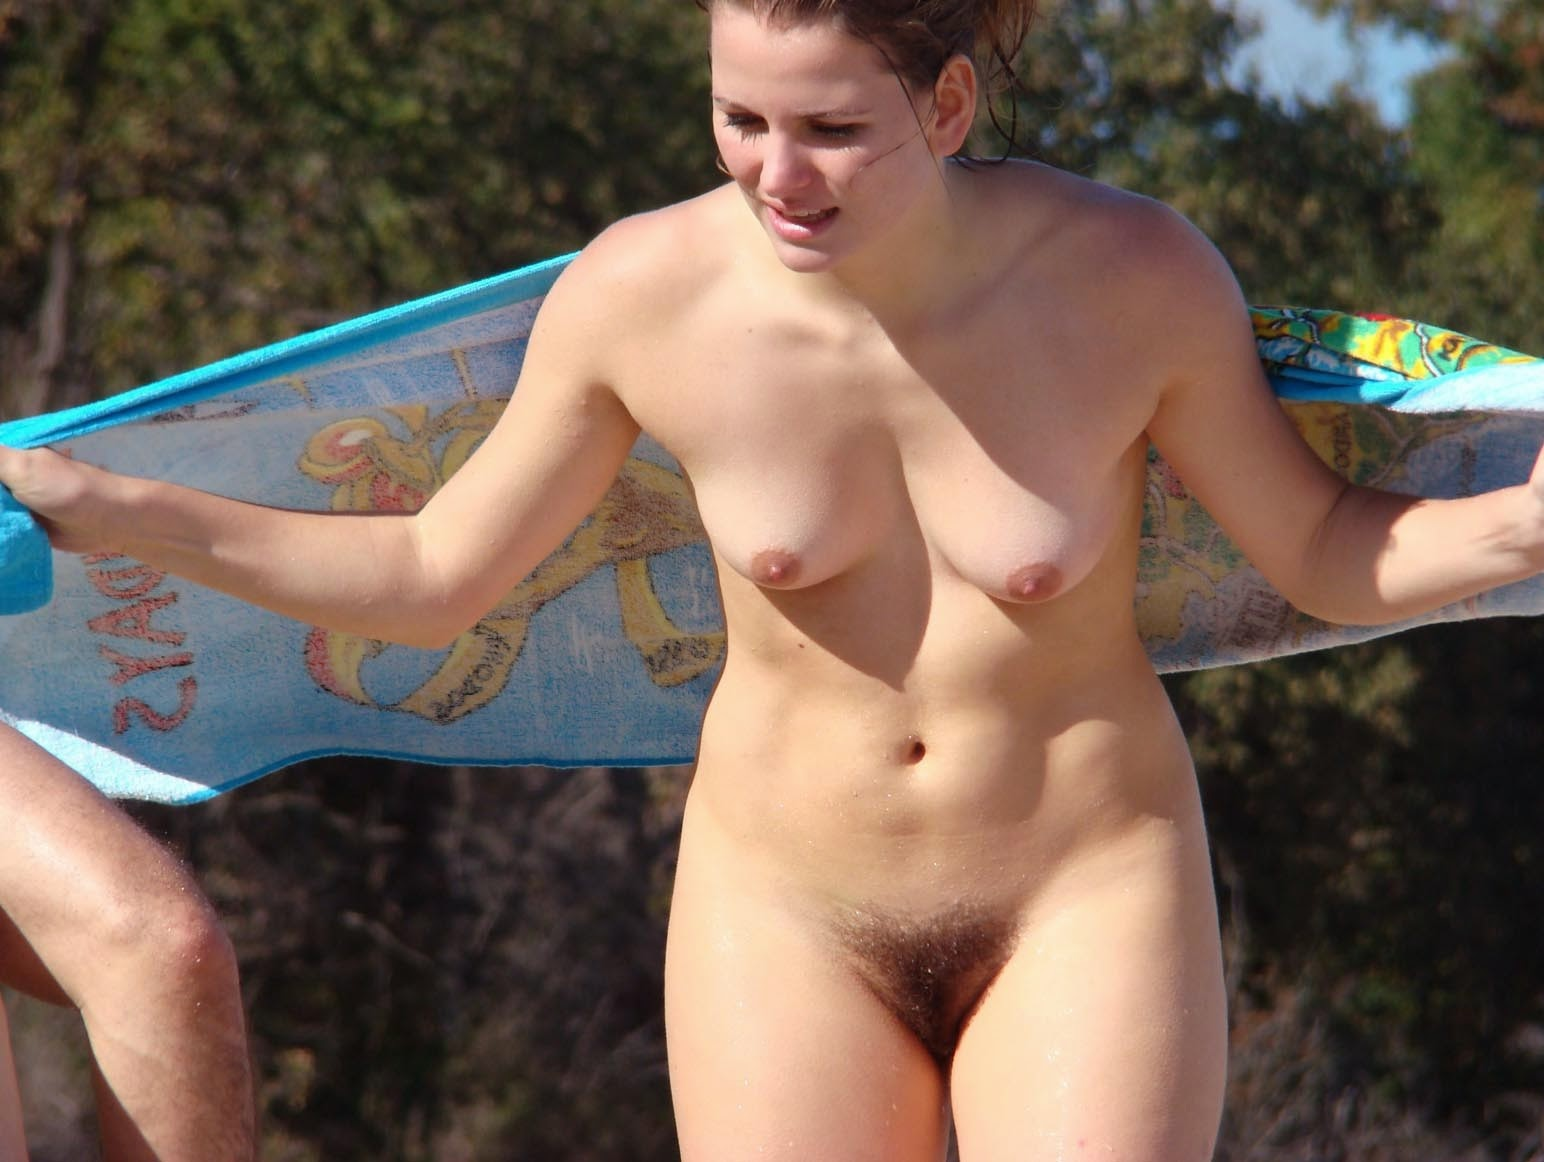 The excellent Beach girl young hairy nudists Sex mom fuck was